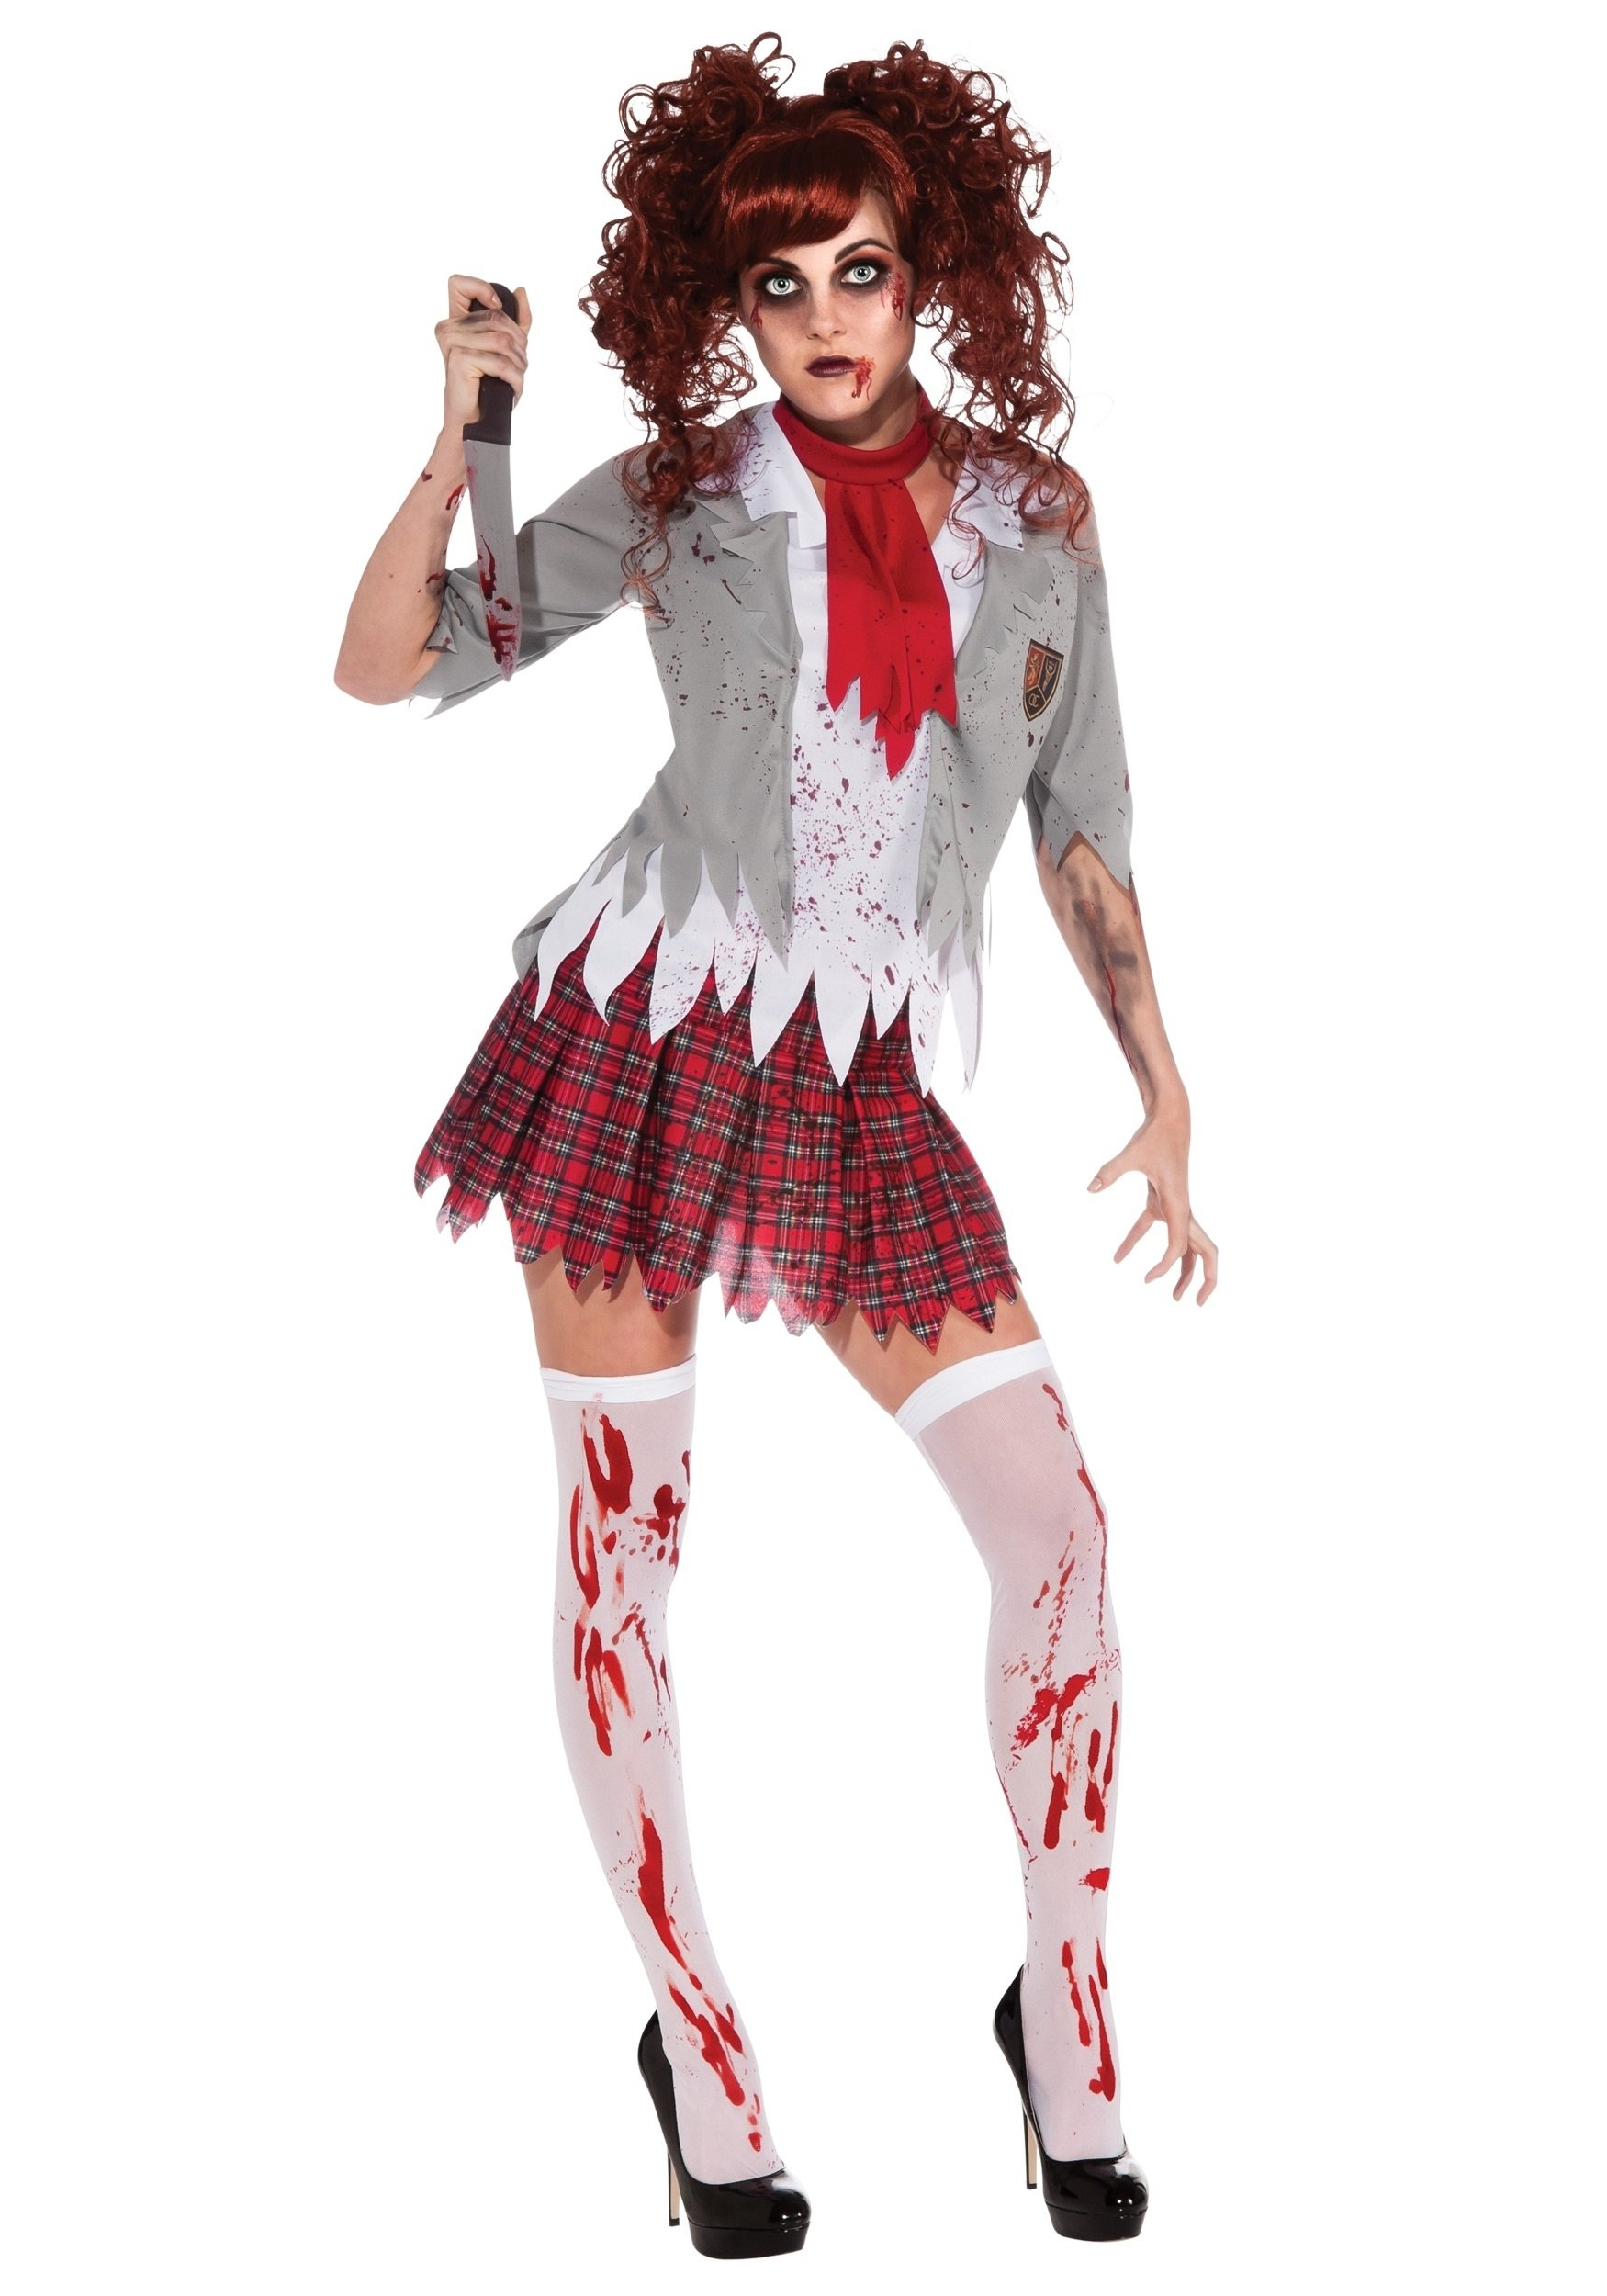 10 Amazing Zombie Costume Ideas For Girls zombie school girl costume